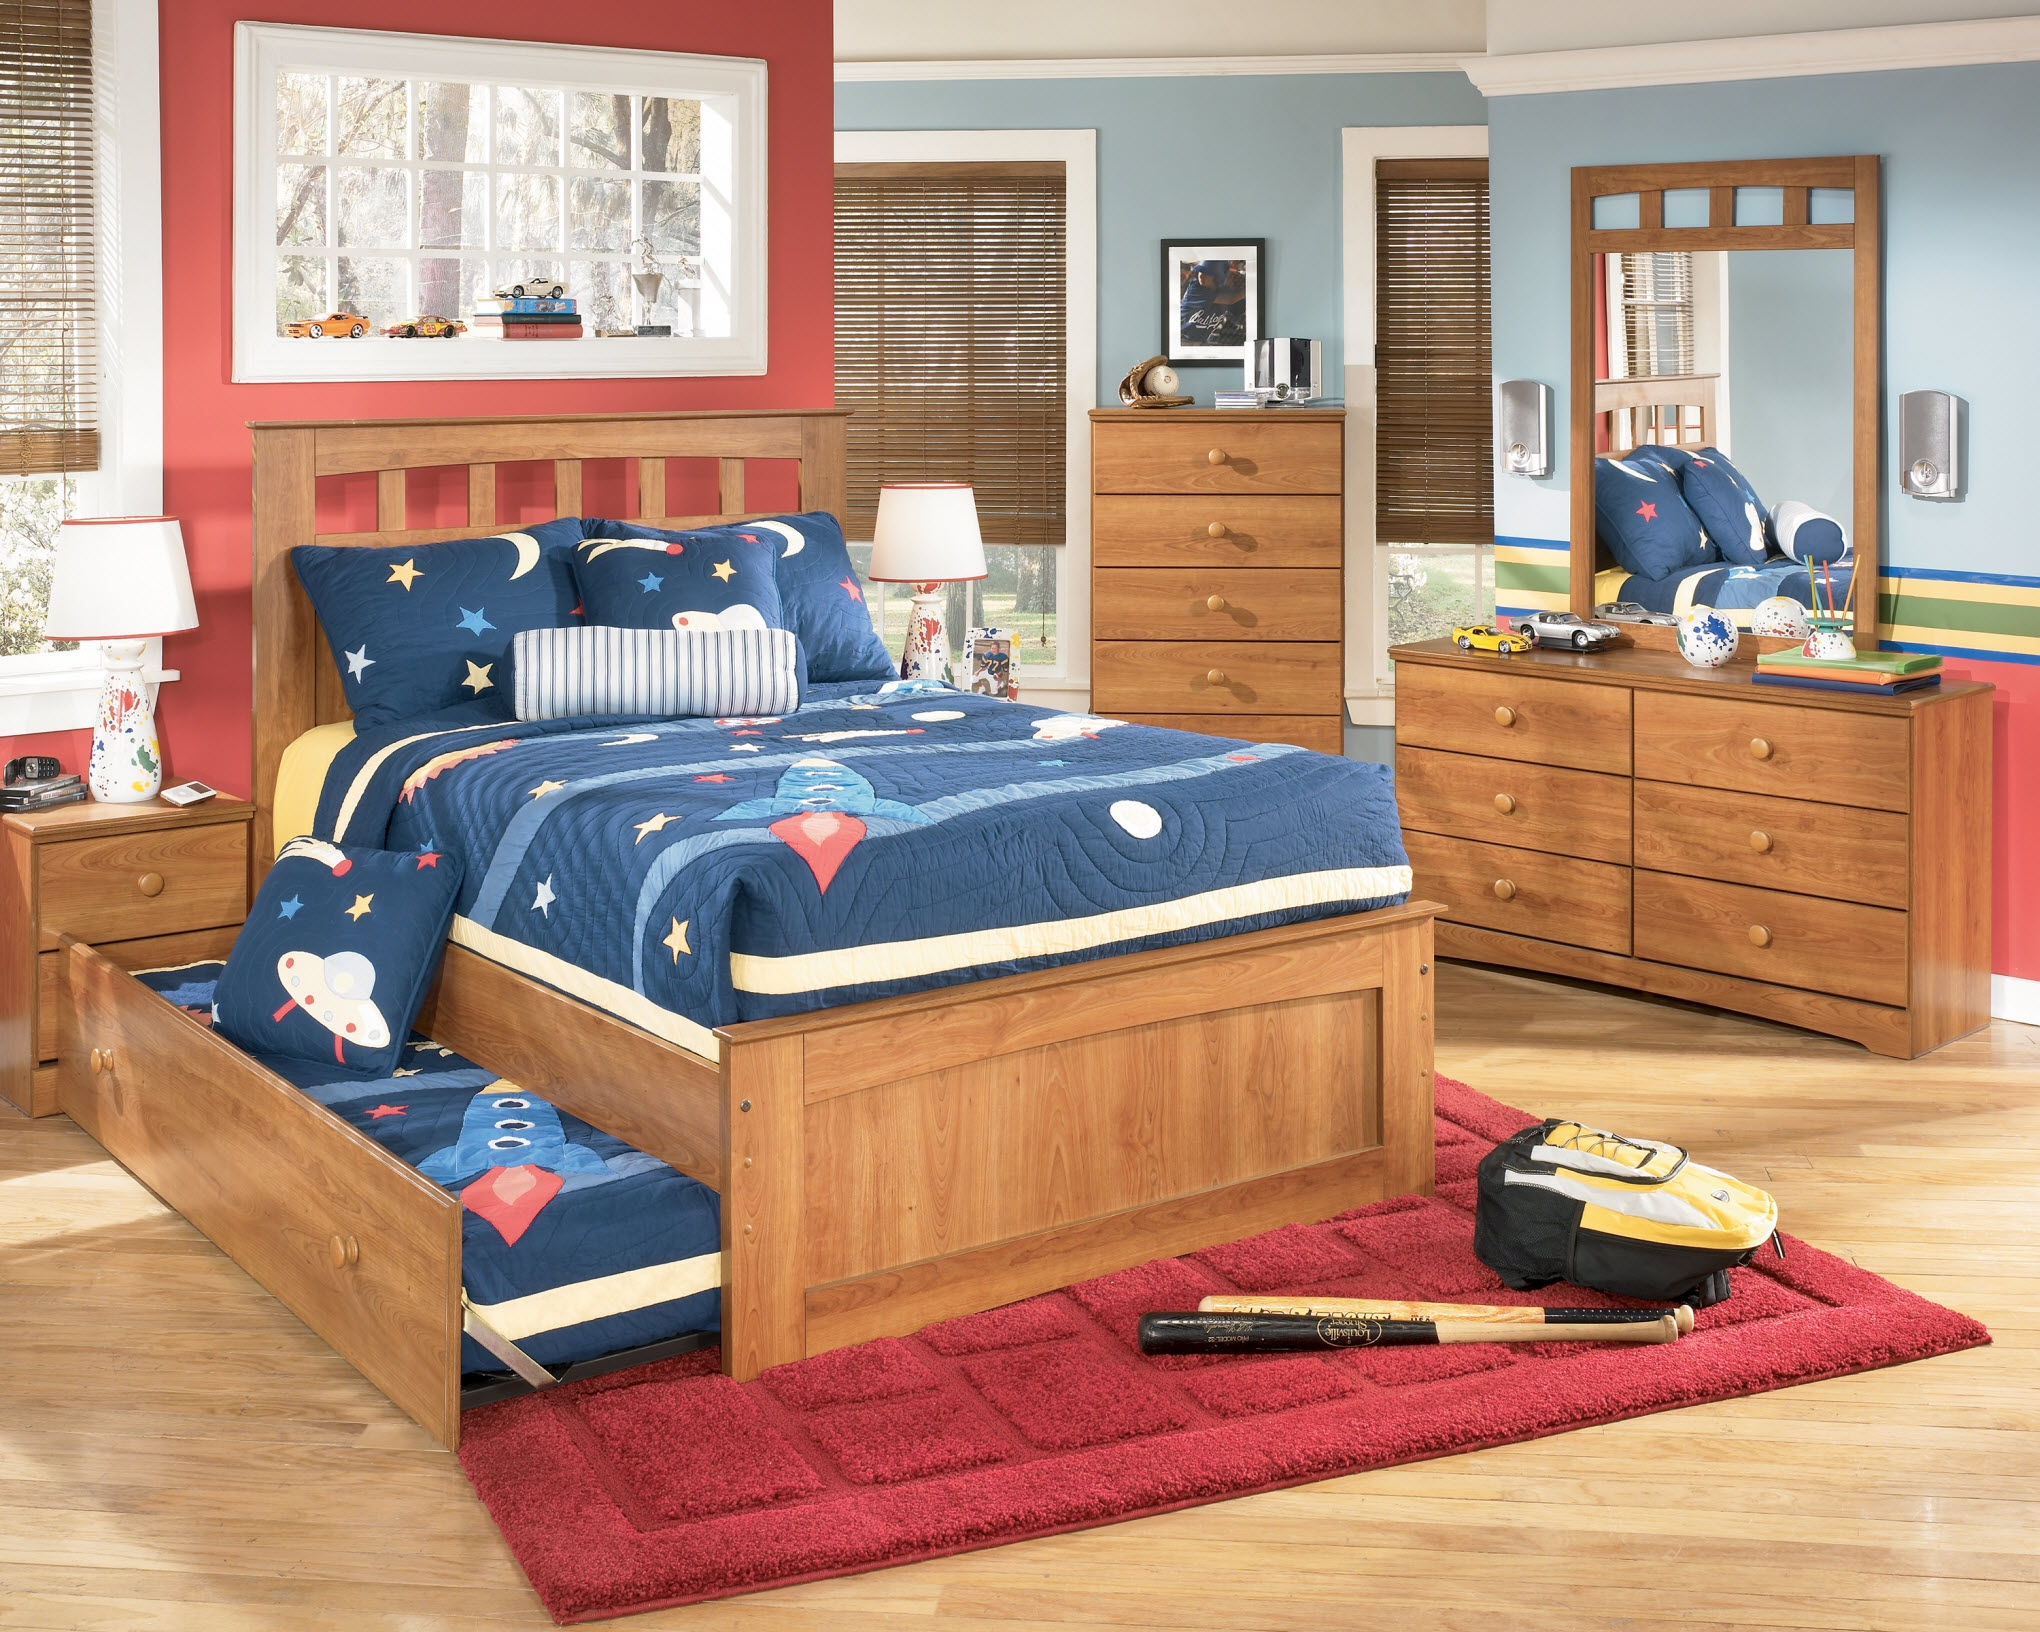 inexpensive bedroom furniture for kids photo - 9